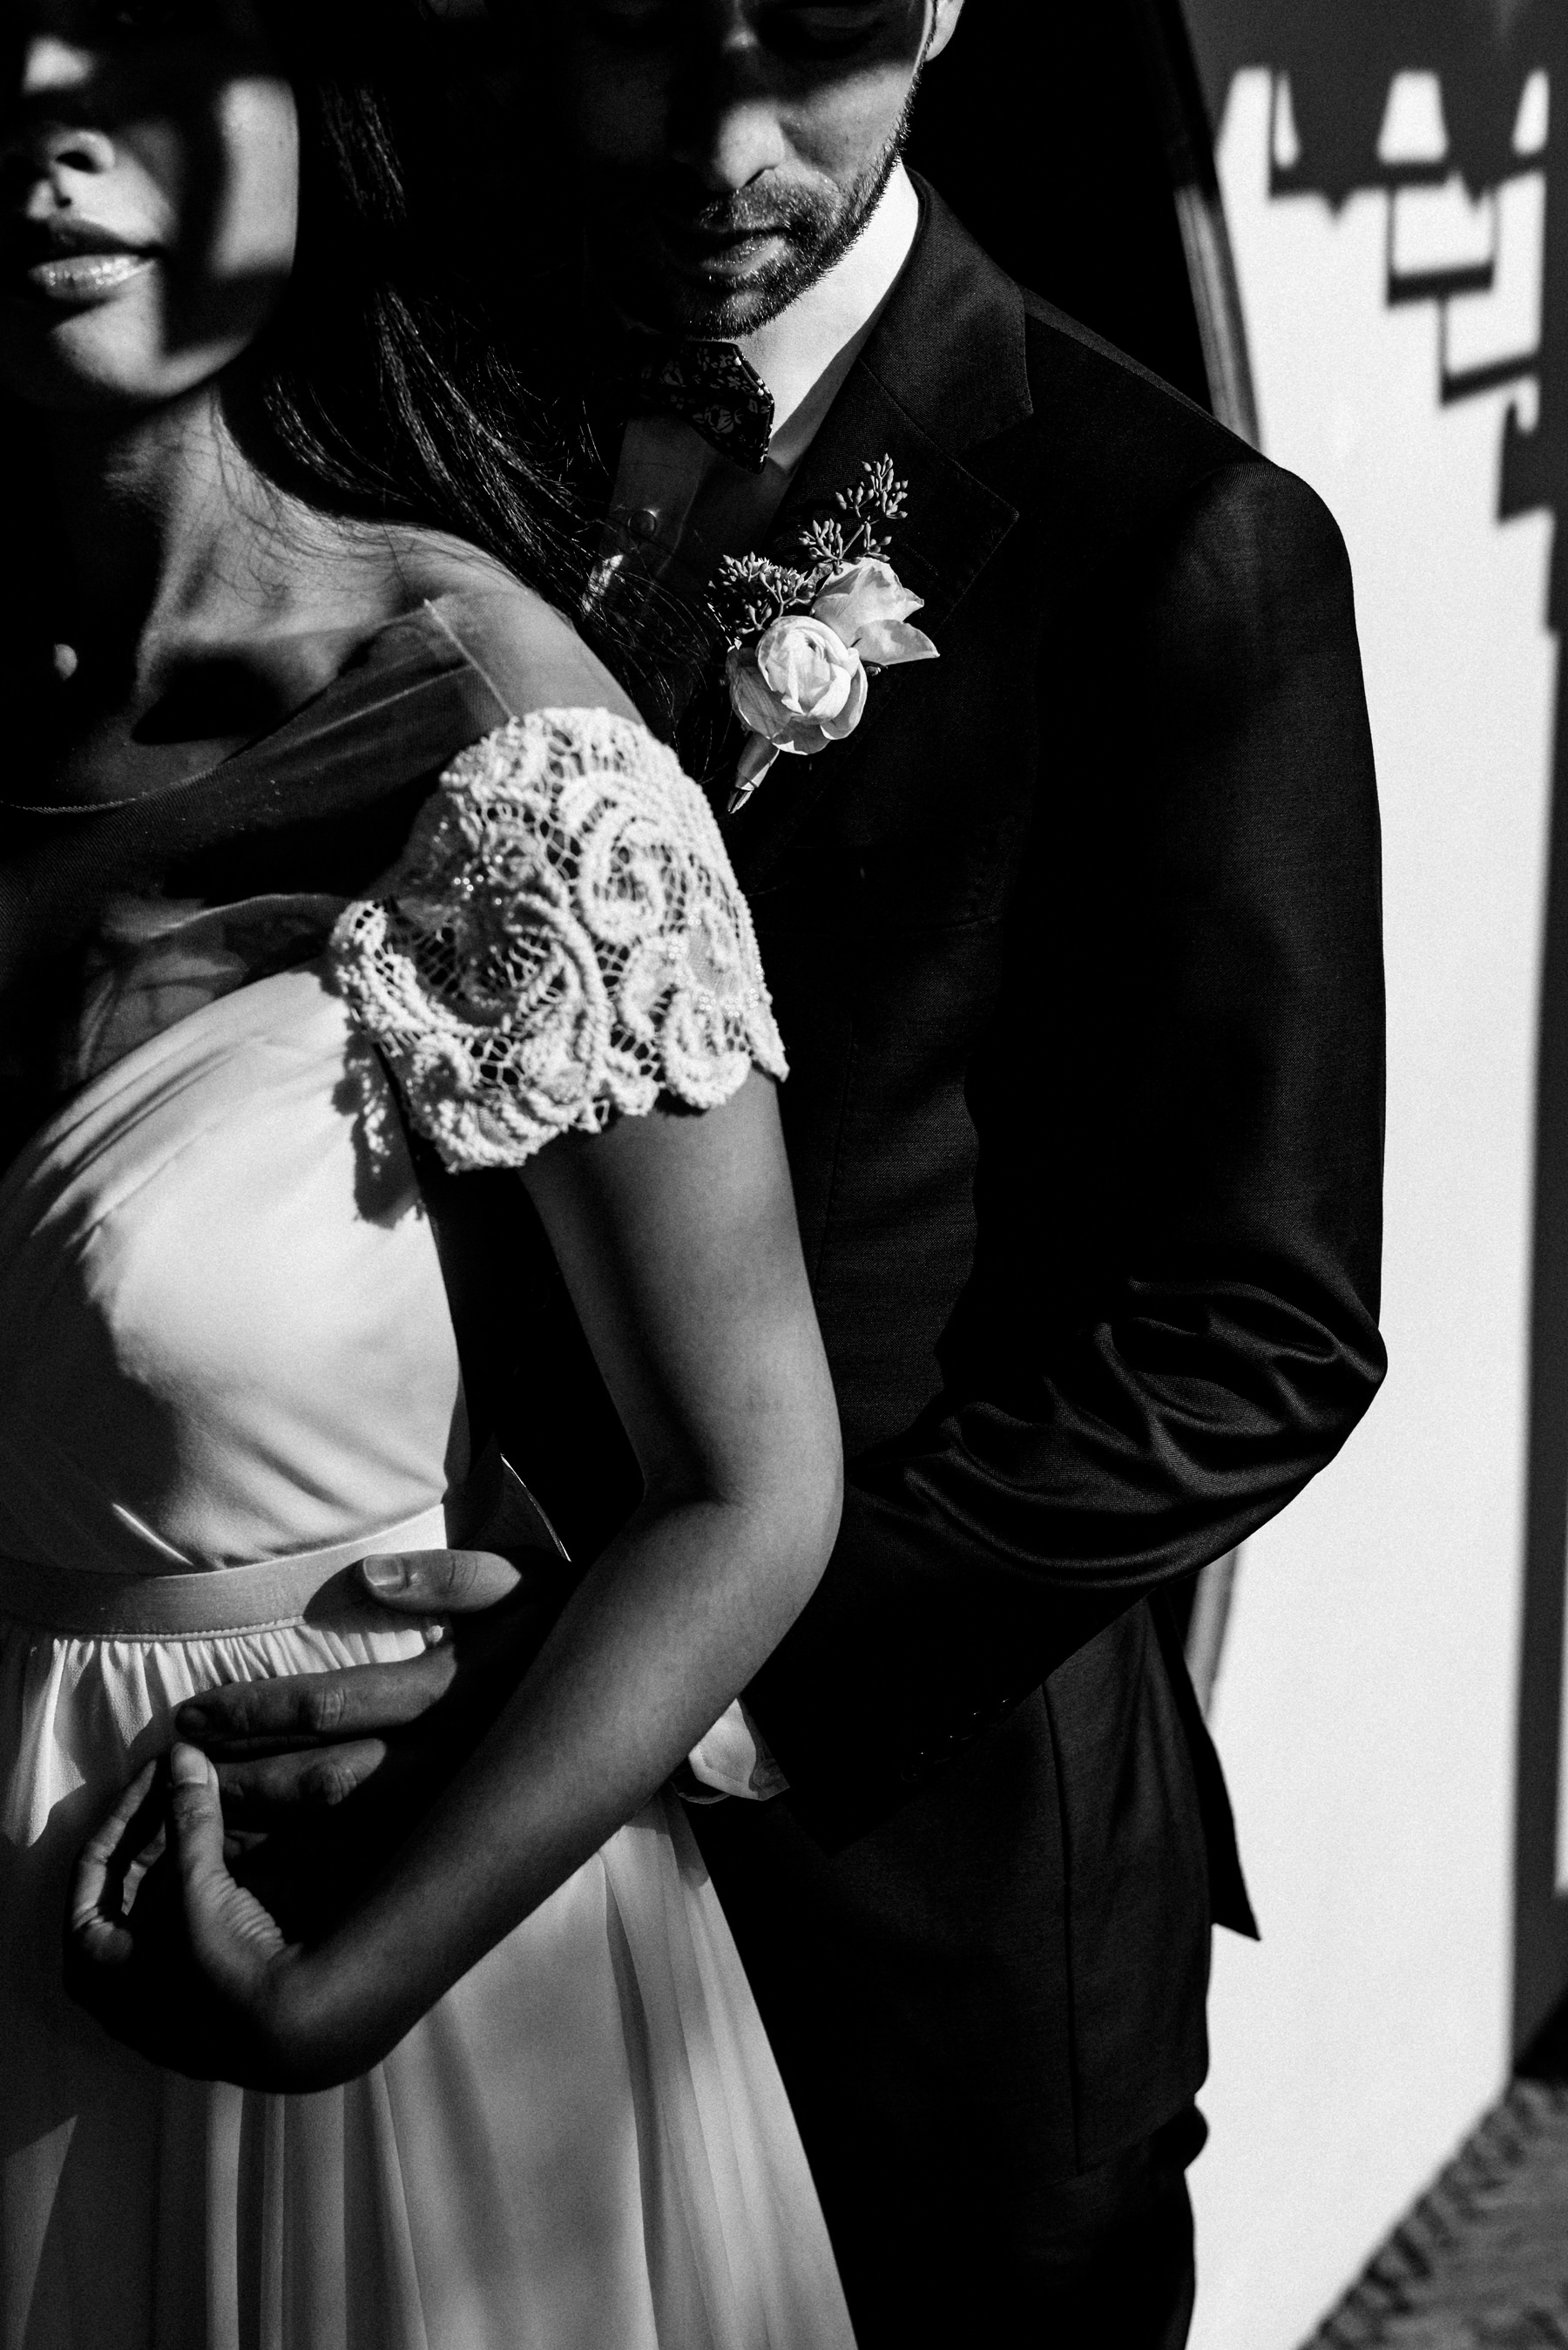 Dr. Sun Yat-Sen Classical Chinese Gardens Wedding Couple Black and White